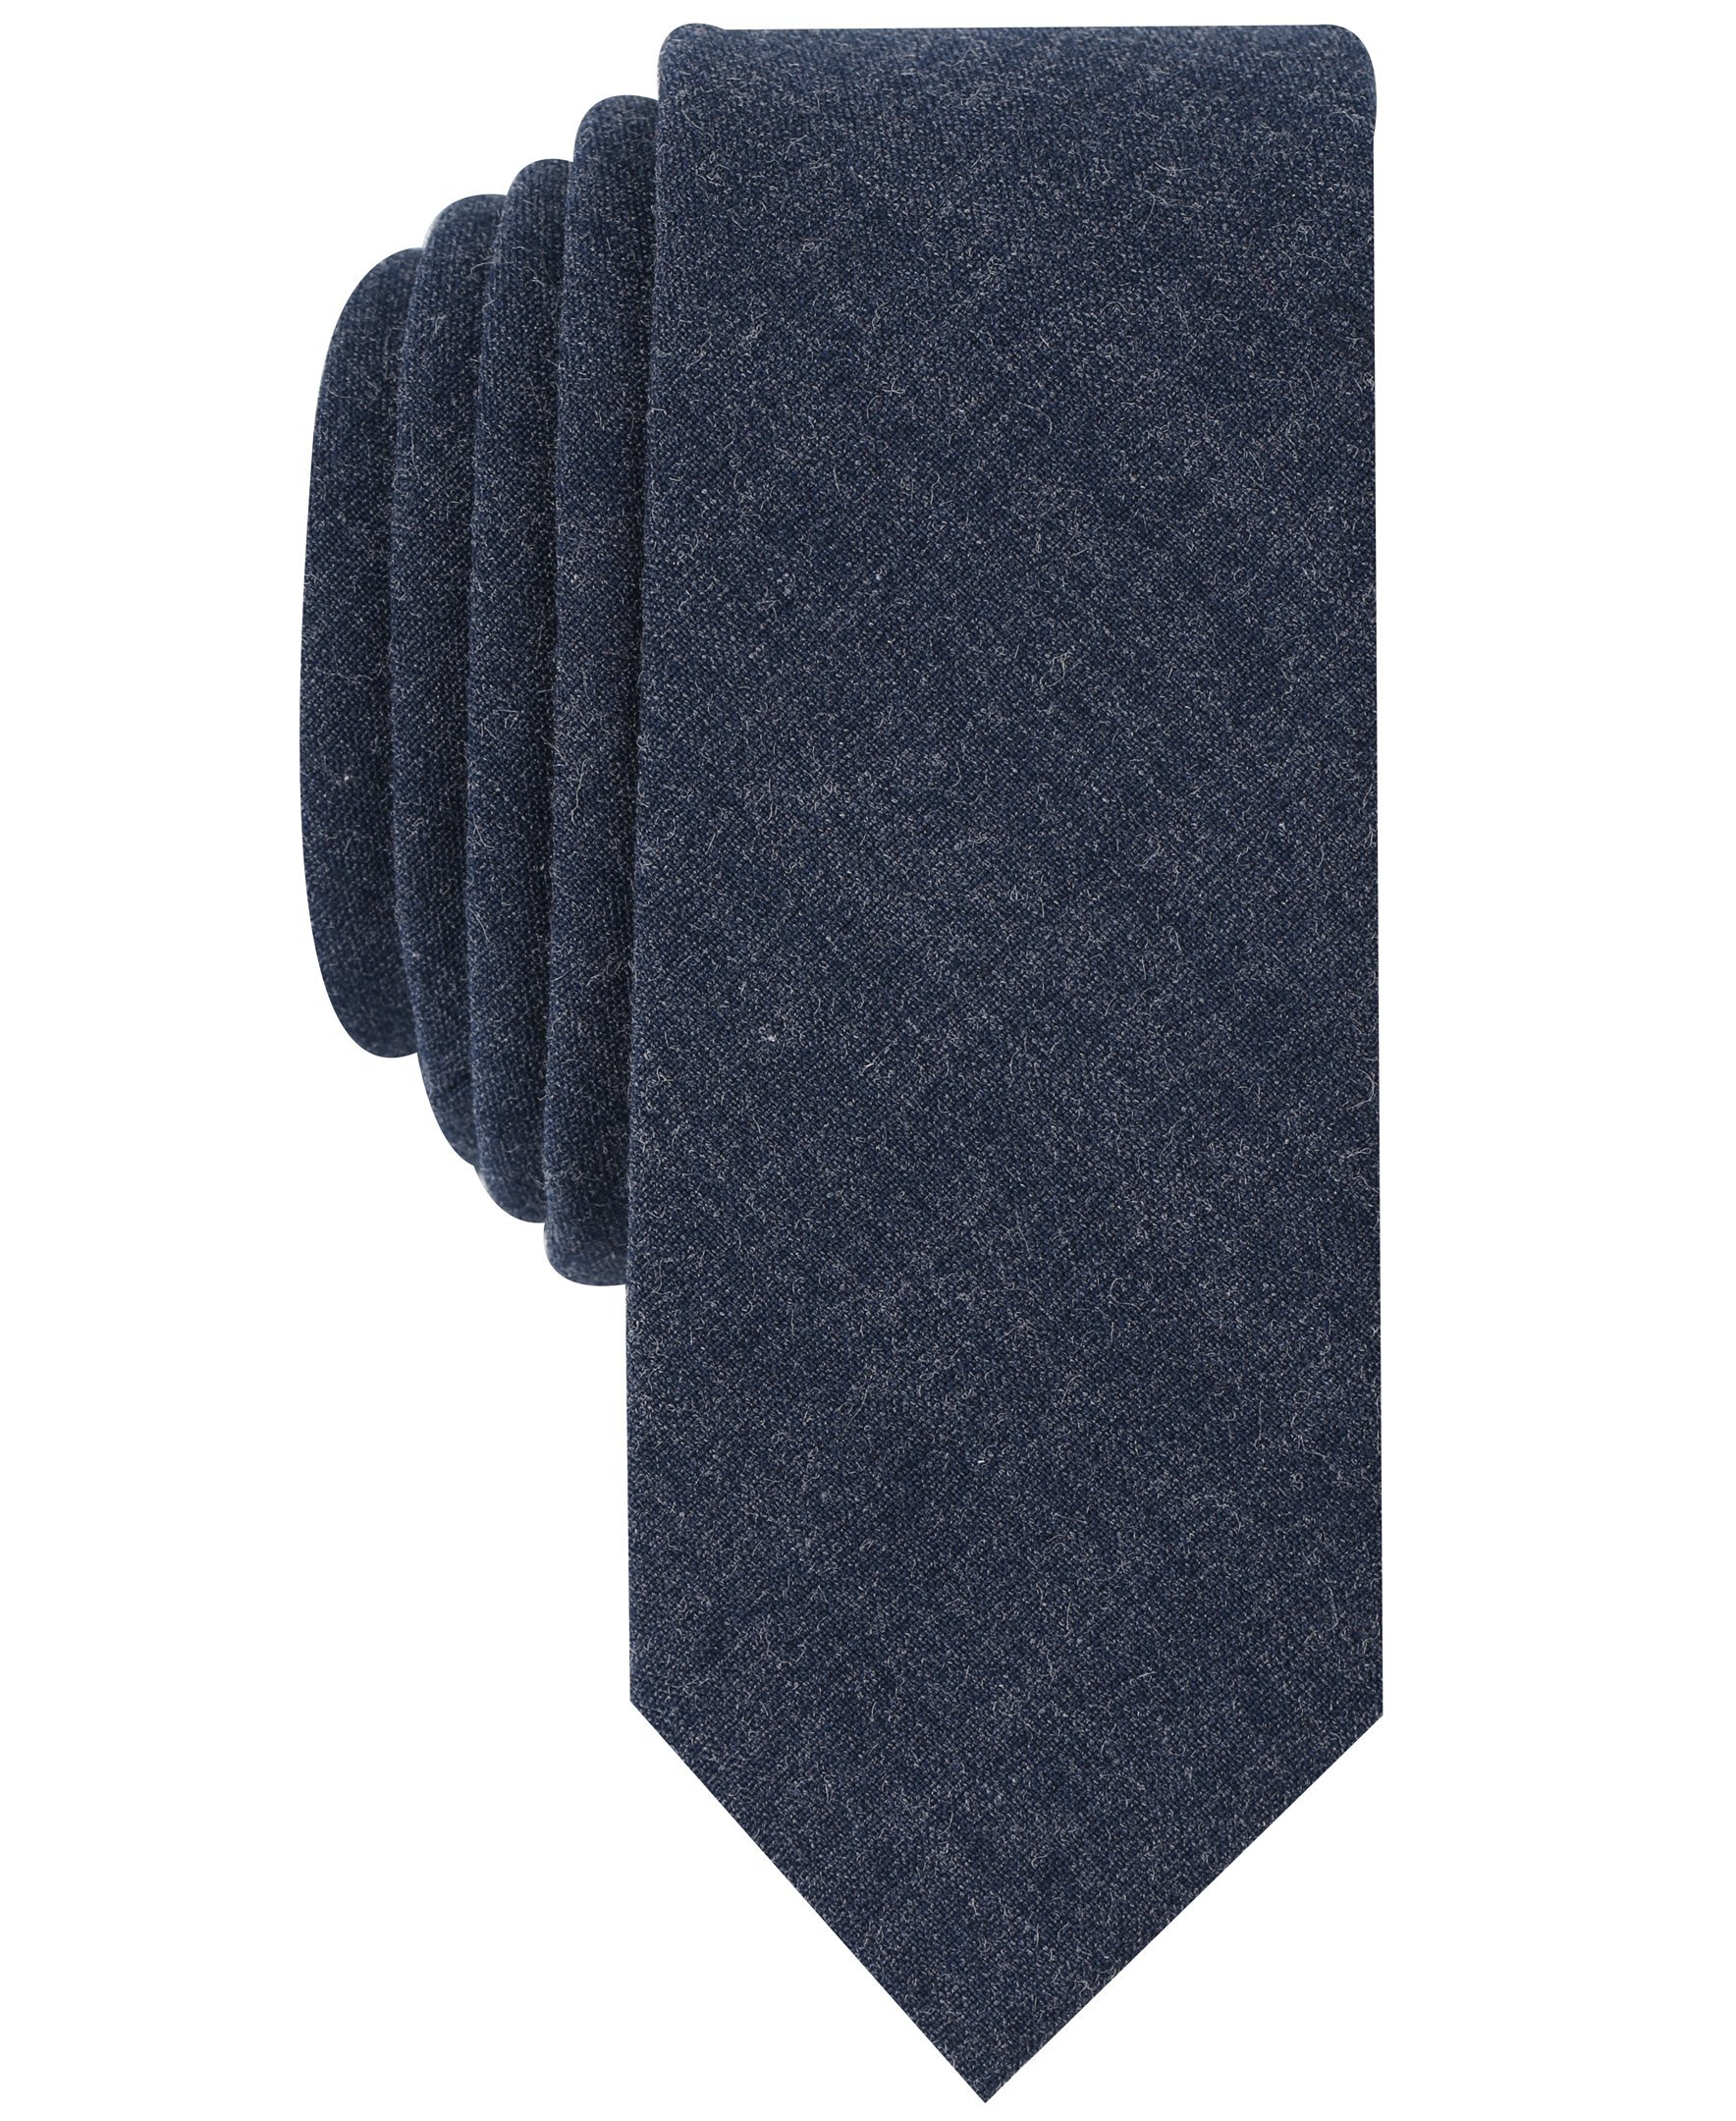 Original Penguin Men's Pique Solid Tie, Indigo, One Size